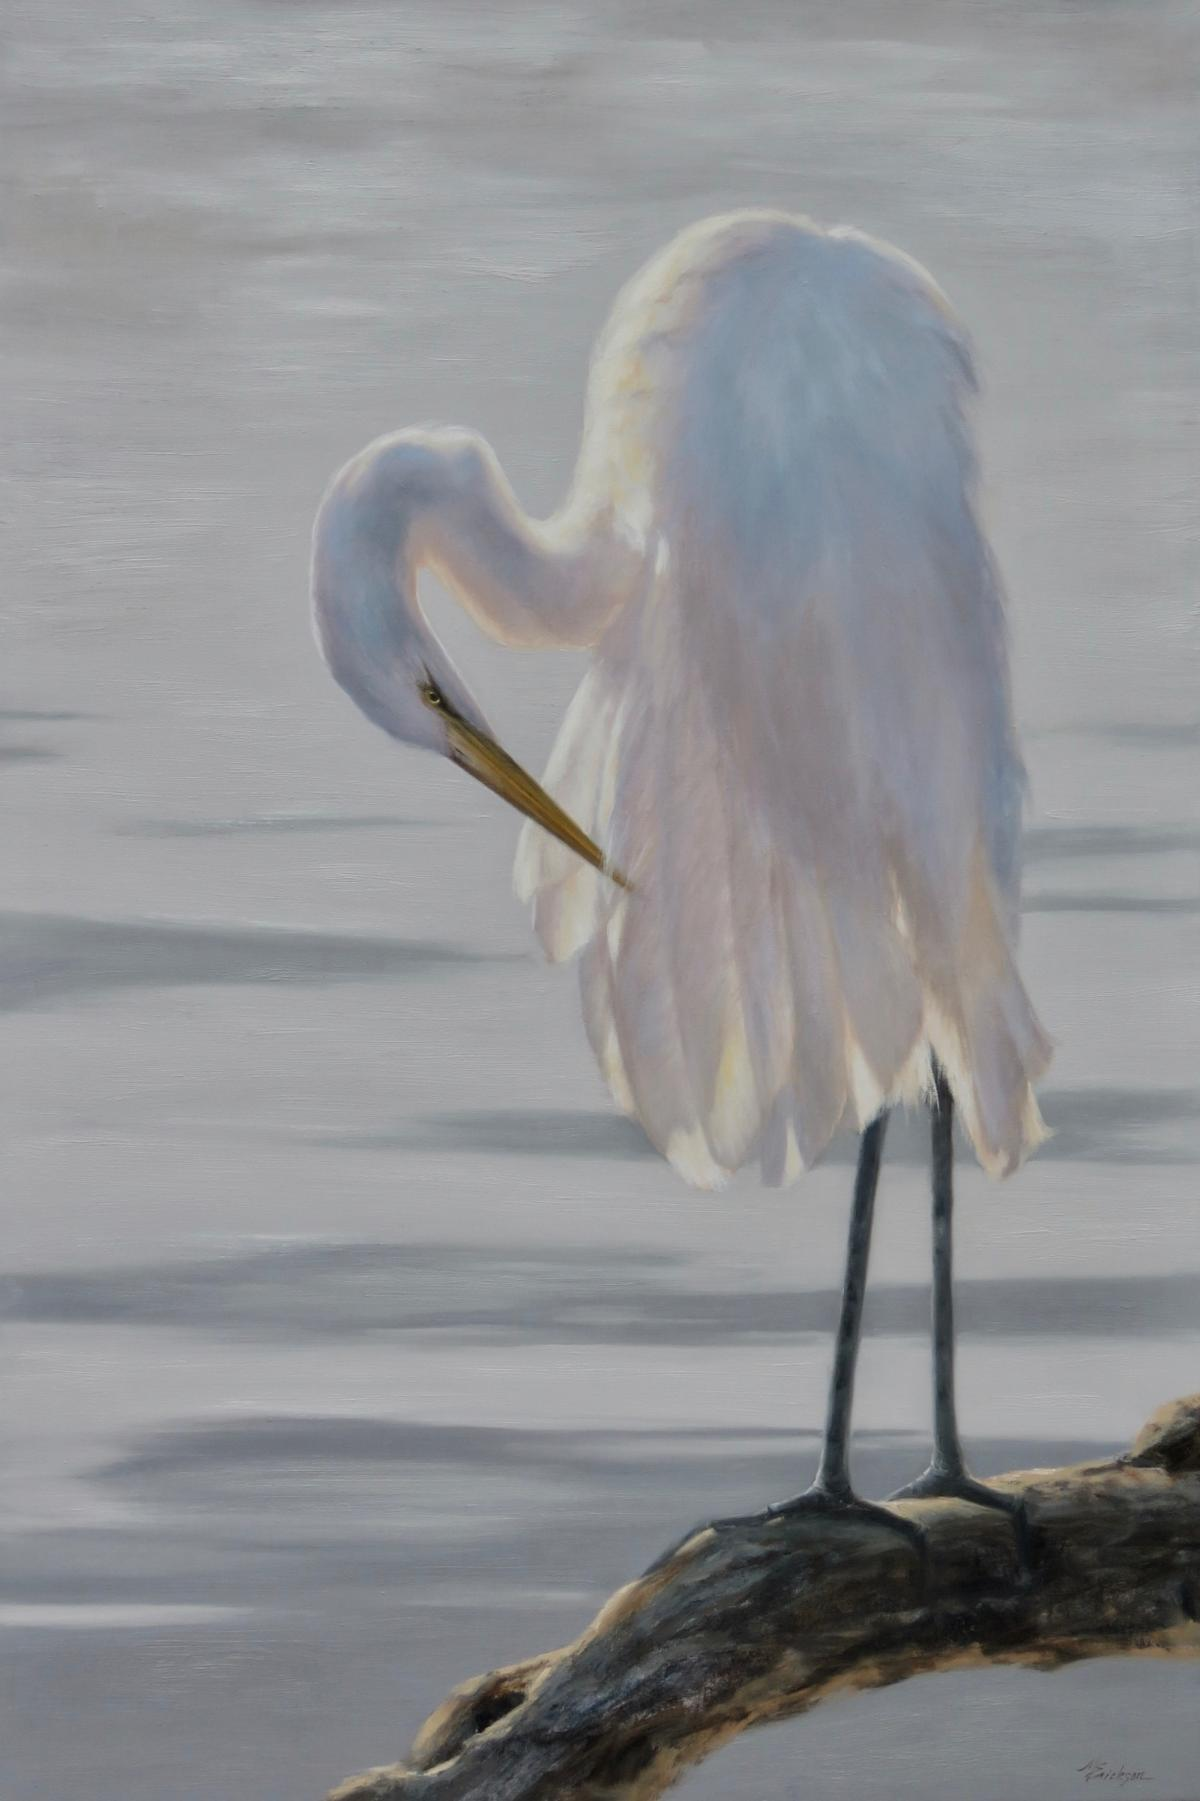 Morning Sacrament - White Egret | Wallhanging by Mary Erickson | Artists for Conservation 2020